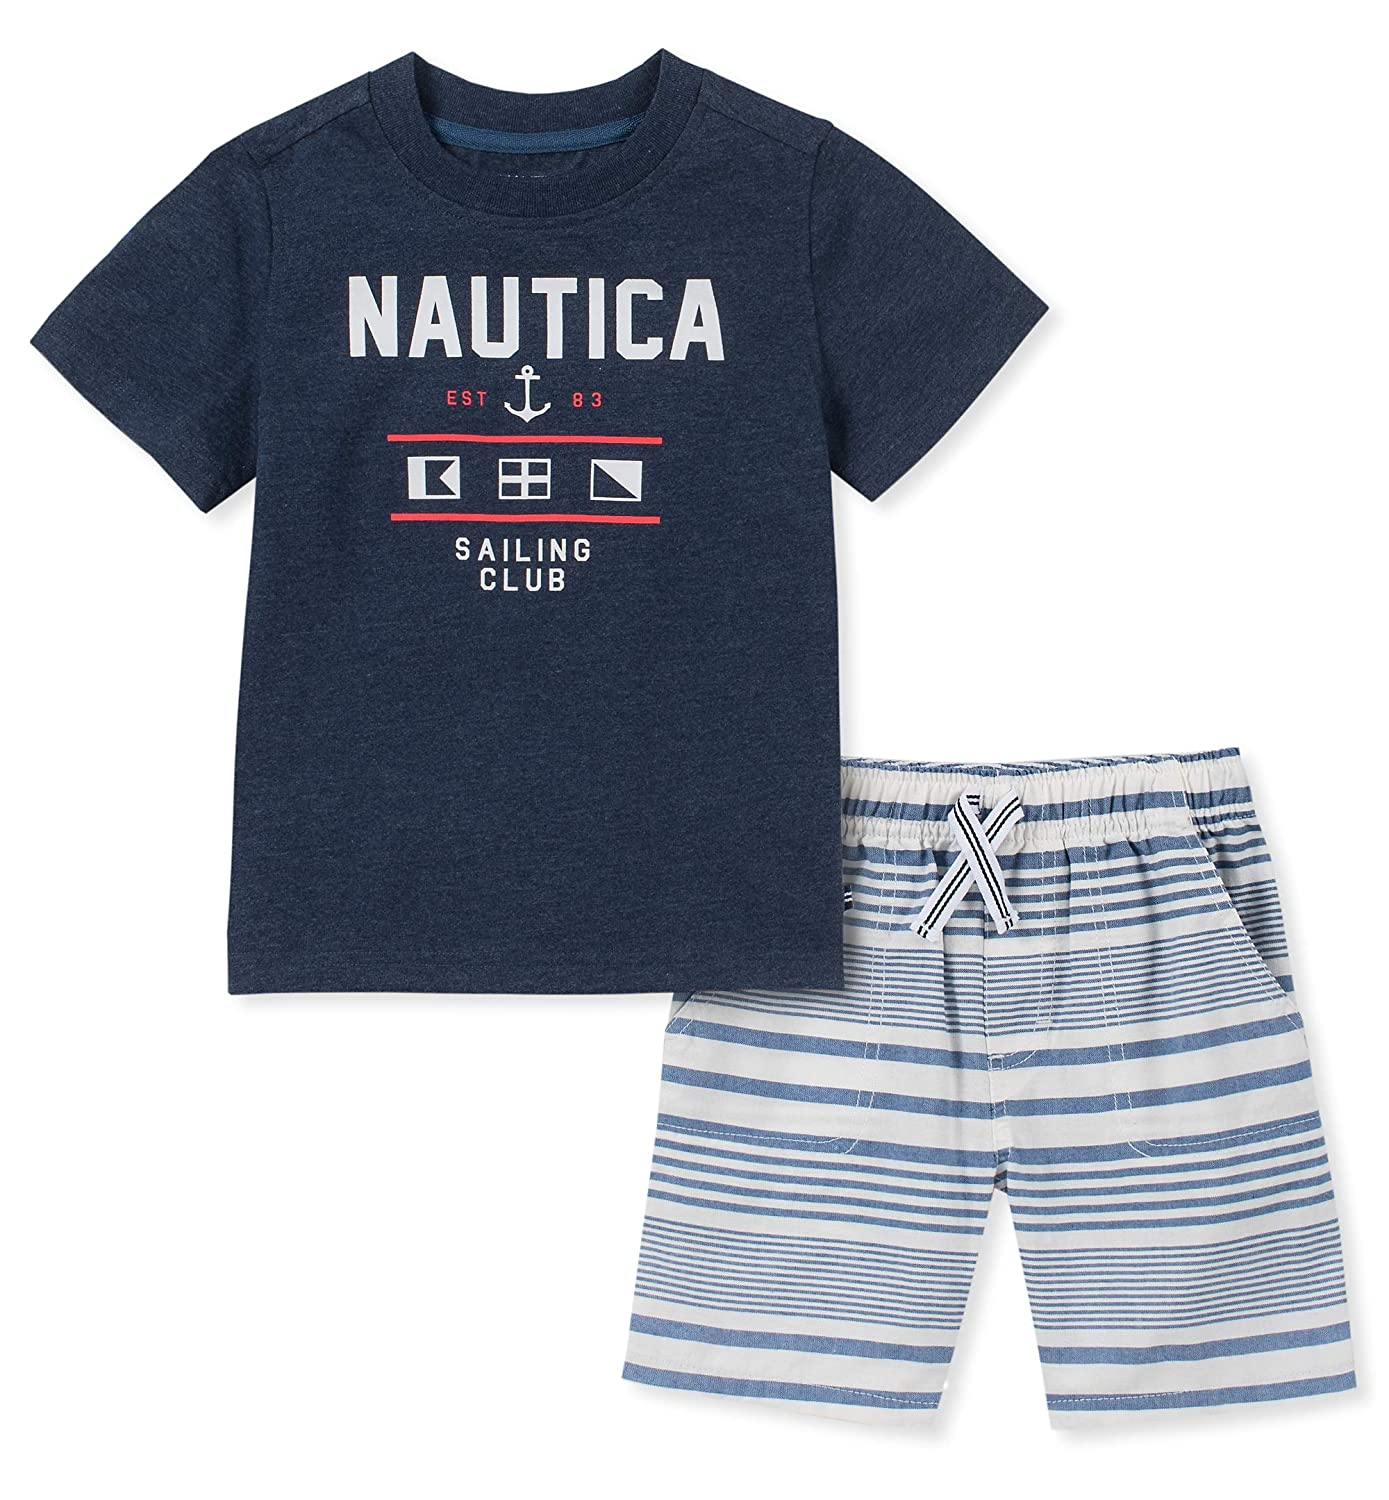 Nautica Sets KHQ Boys 2 Pieces Shorts Set Shorts Set